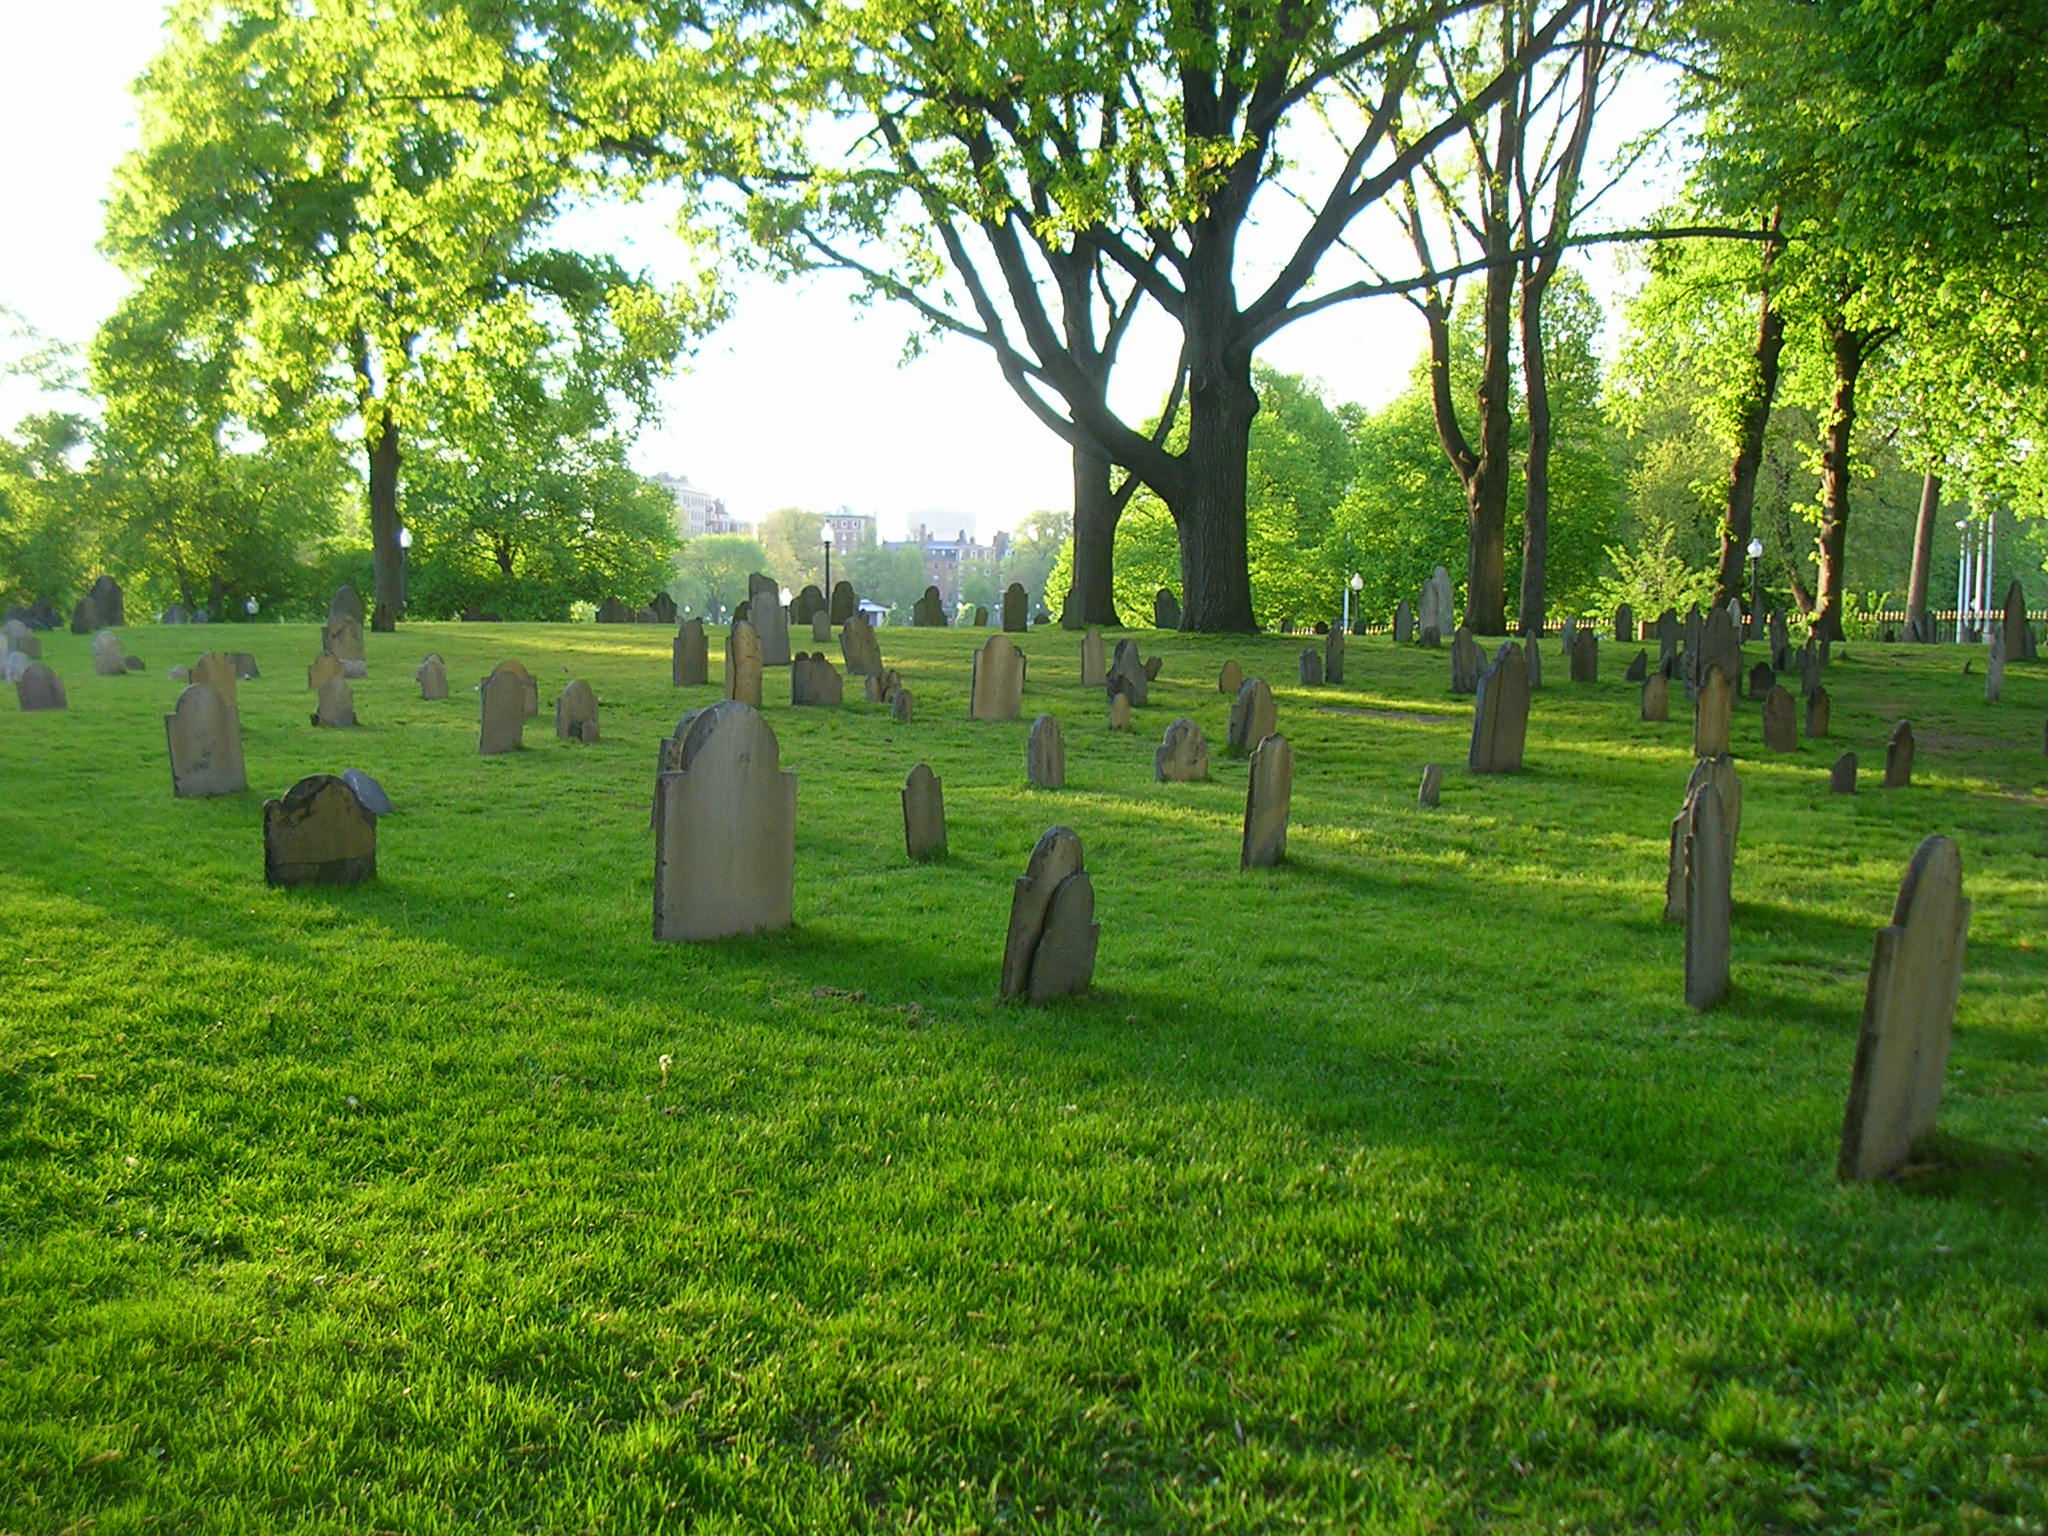 Central Burying Ground in Boston Common (image from Wikimedia)